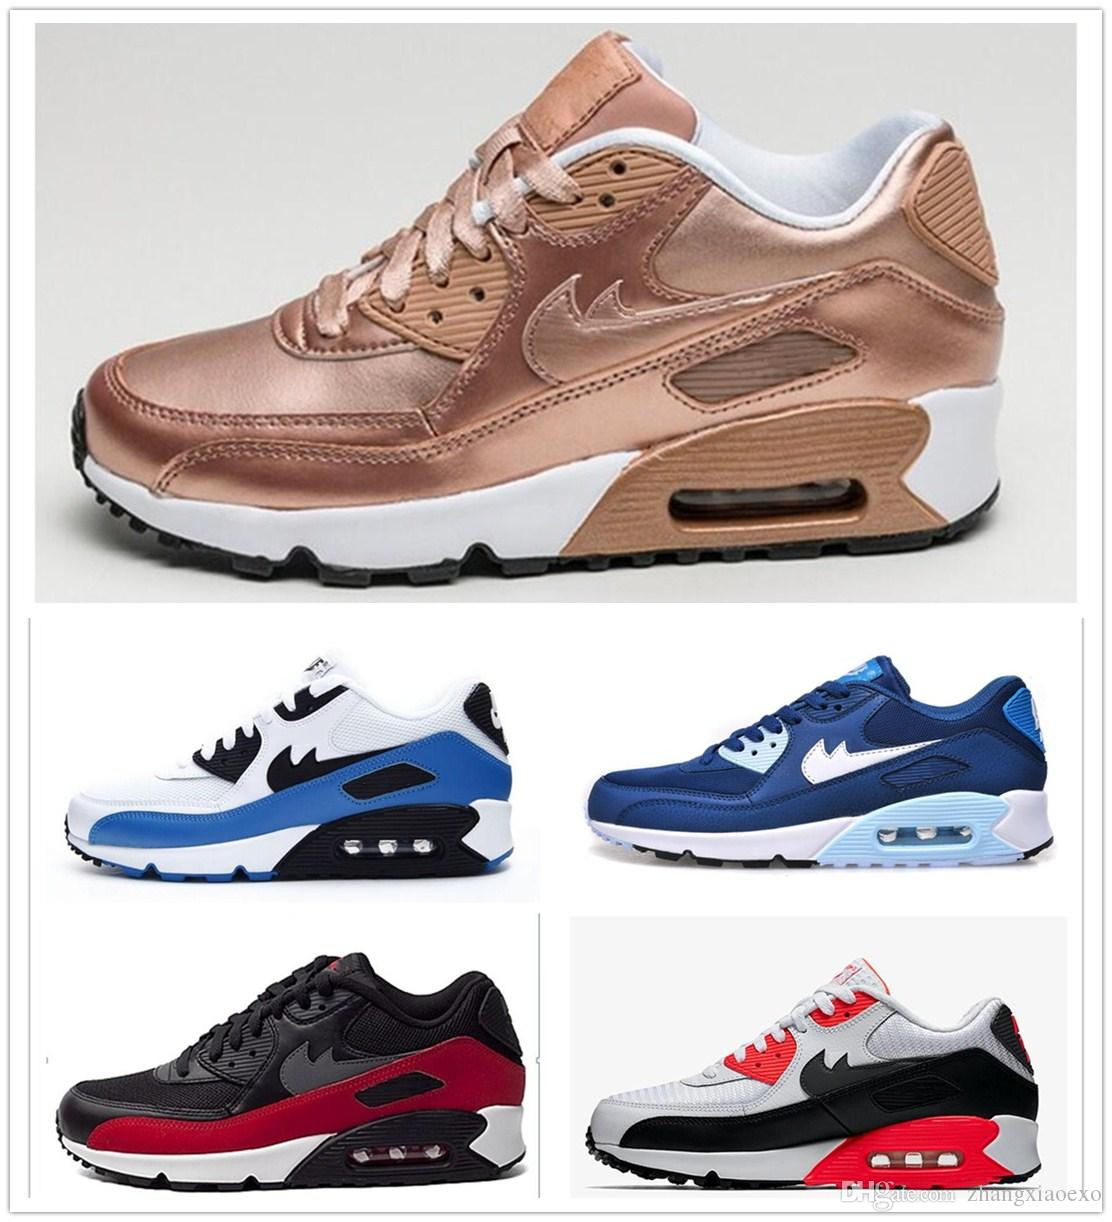 2018 Free Shipping 2017 Kpu Men Women Running Shoes Classic Mens Trainer Cushion Surface Scarpe Uomo Breathable Sports Sneakers sale eastbay manchester great sale cheap online 1sST1XE7D1